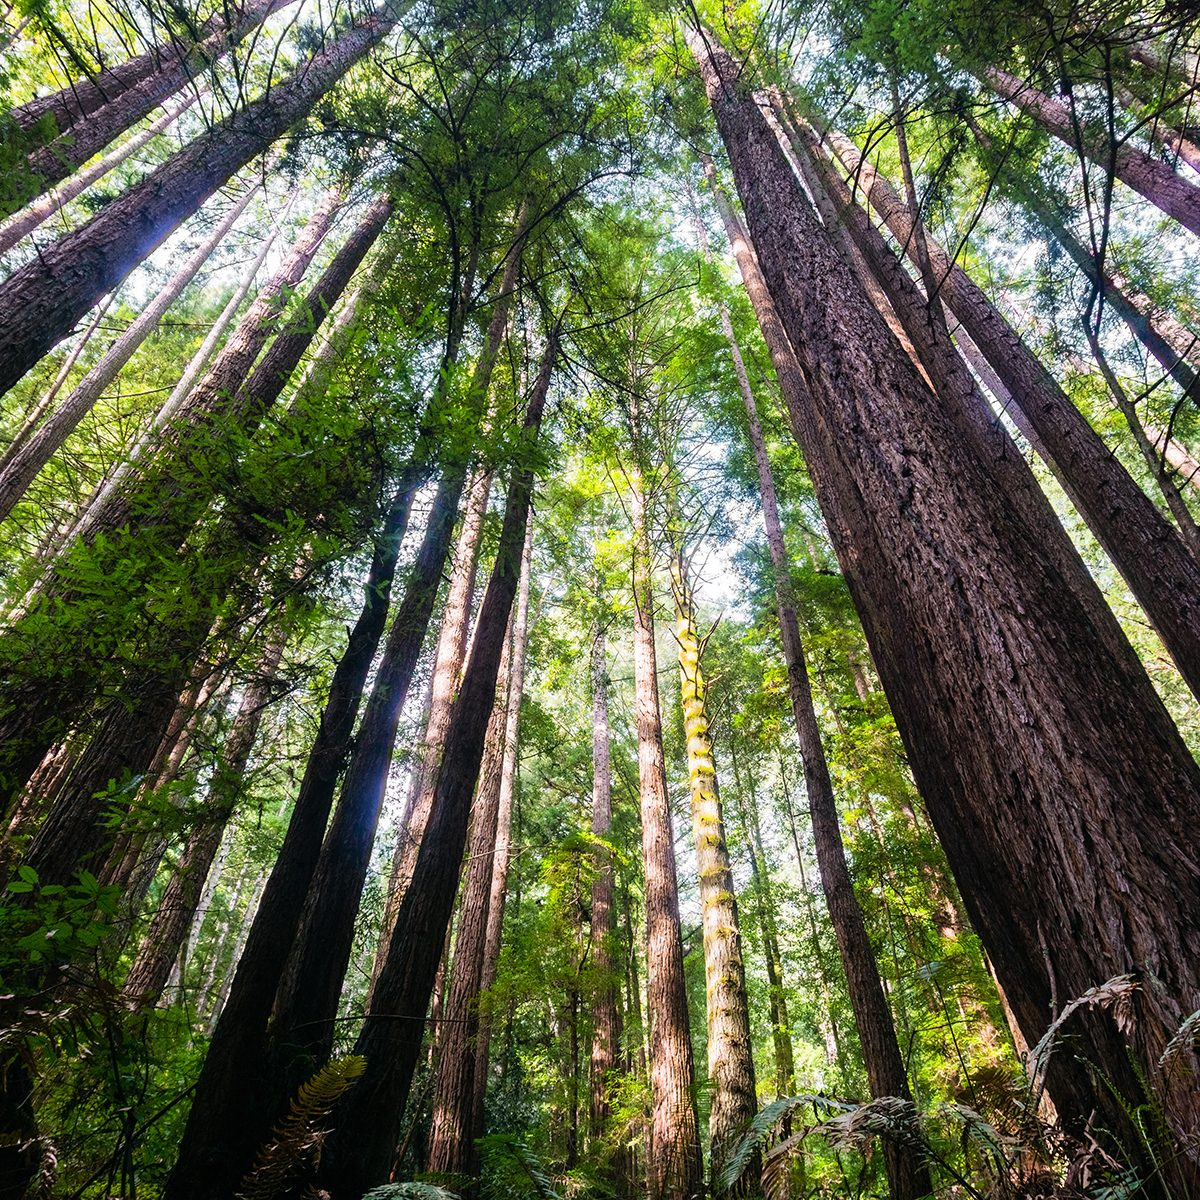 Redwood trees (Sequoia Sempervirens) in the forests of Henry Cowell State Park, Santa Cruz mountains, San Francisco bay area